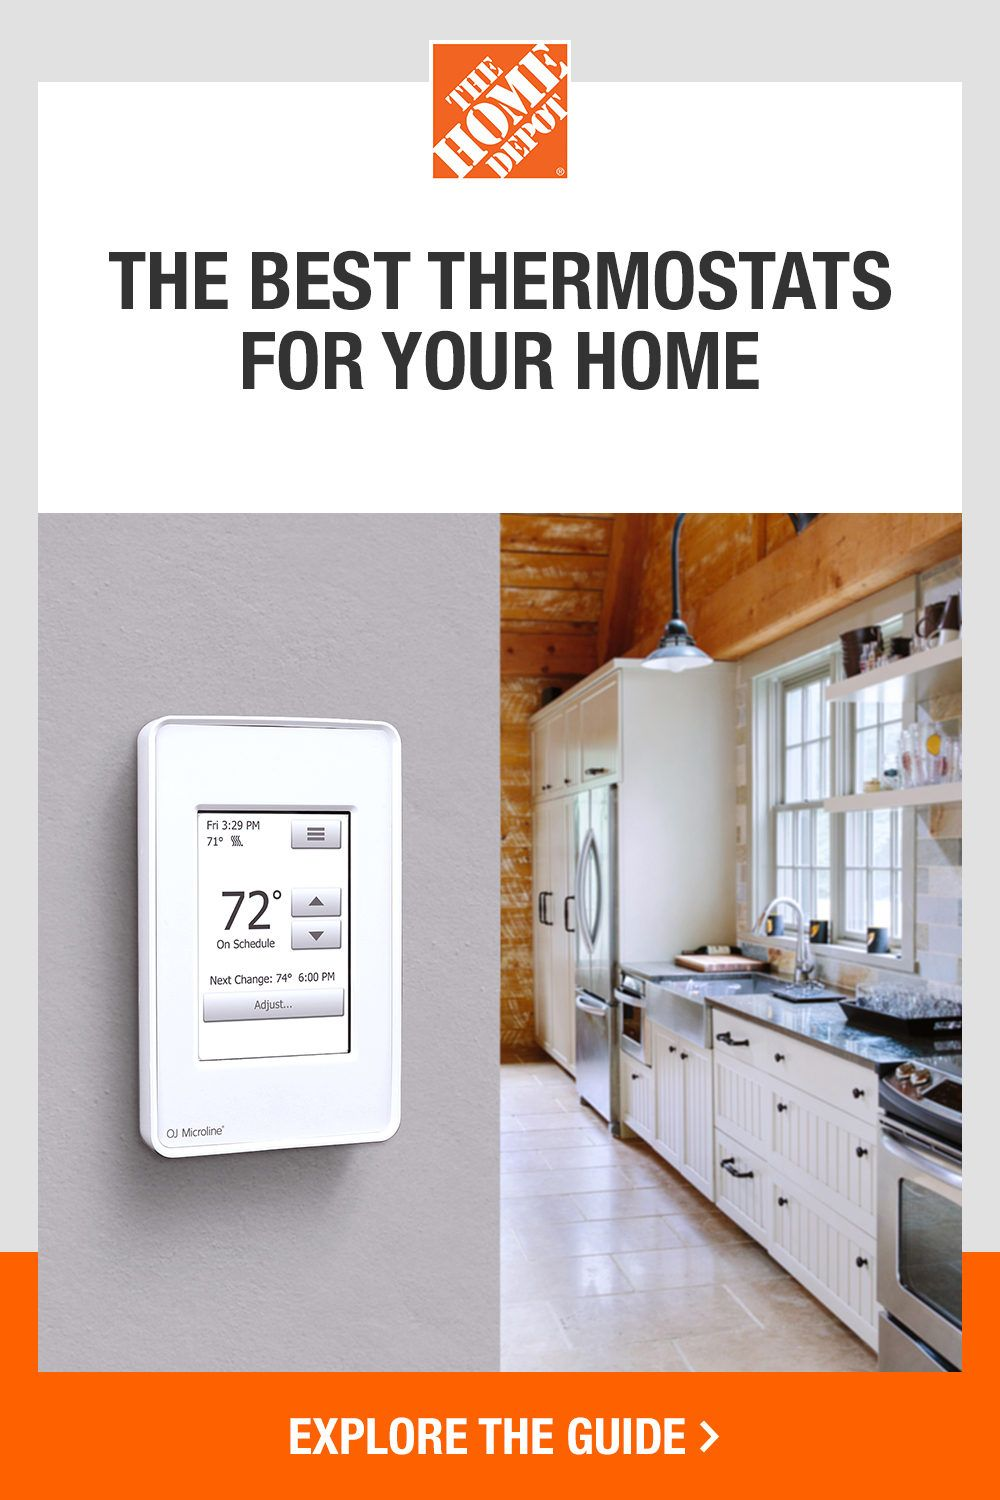 Choosing the right thermostat for your home just got easier with The Home Depot. Our thermostat buying guide is here to help you select the best thermostat for home use while also outlining the special features available that increase convenience, comfort and energy efficiency. From manual to smart thermostats, click The Home Depot to guide to explore all options.